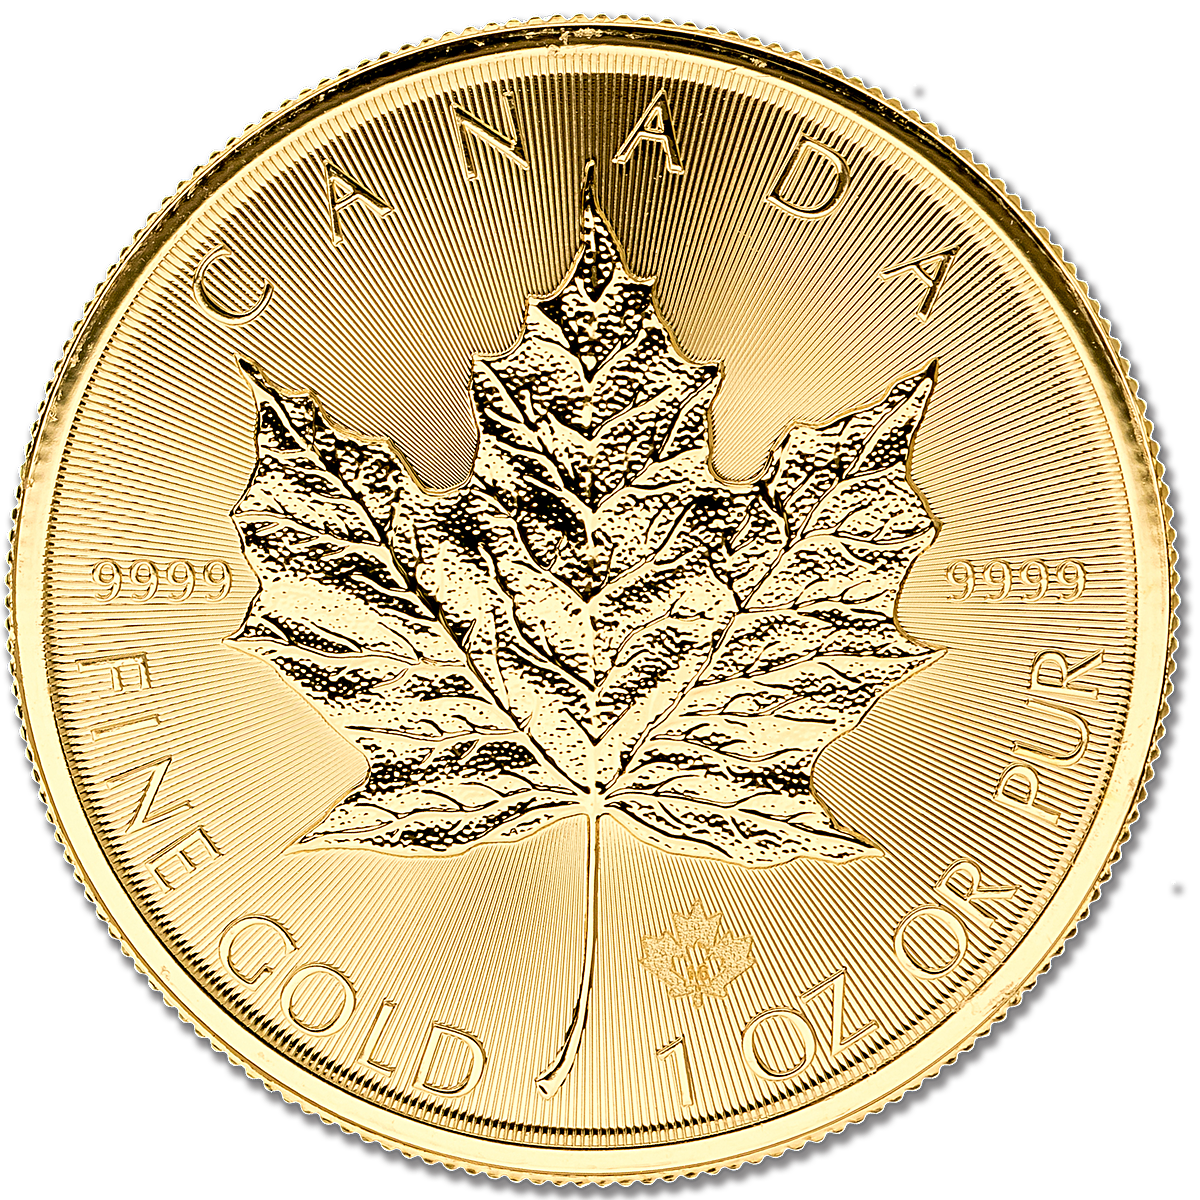 Canadian Gold Maple 2016 - 1 oz - BullionStar Singapore